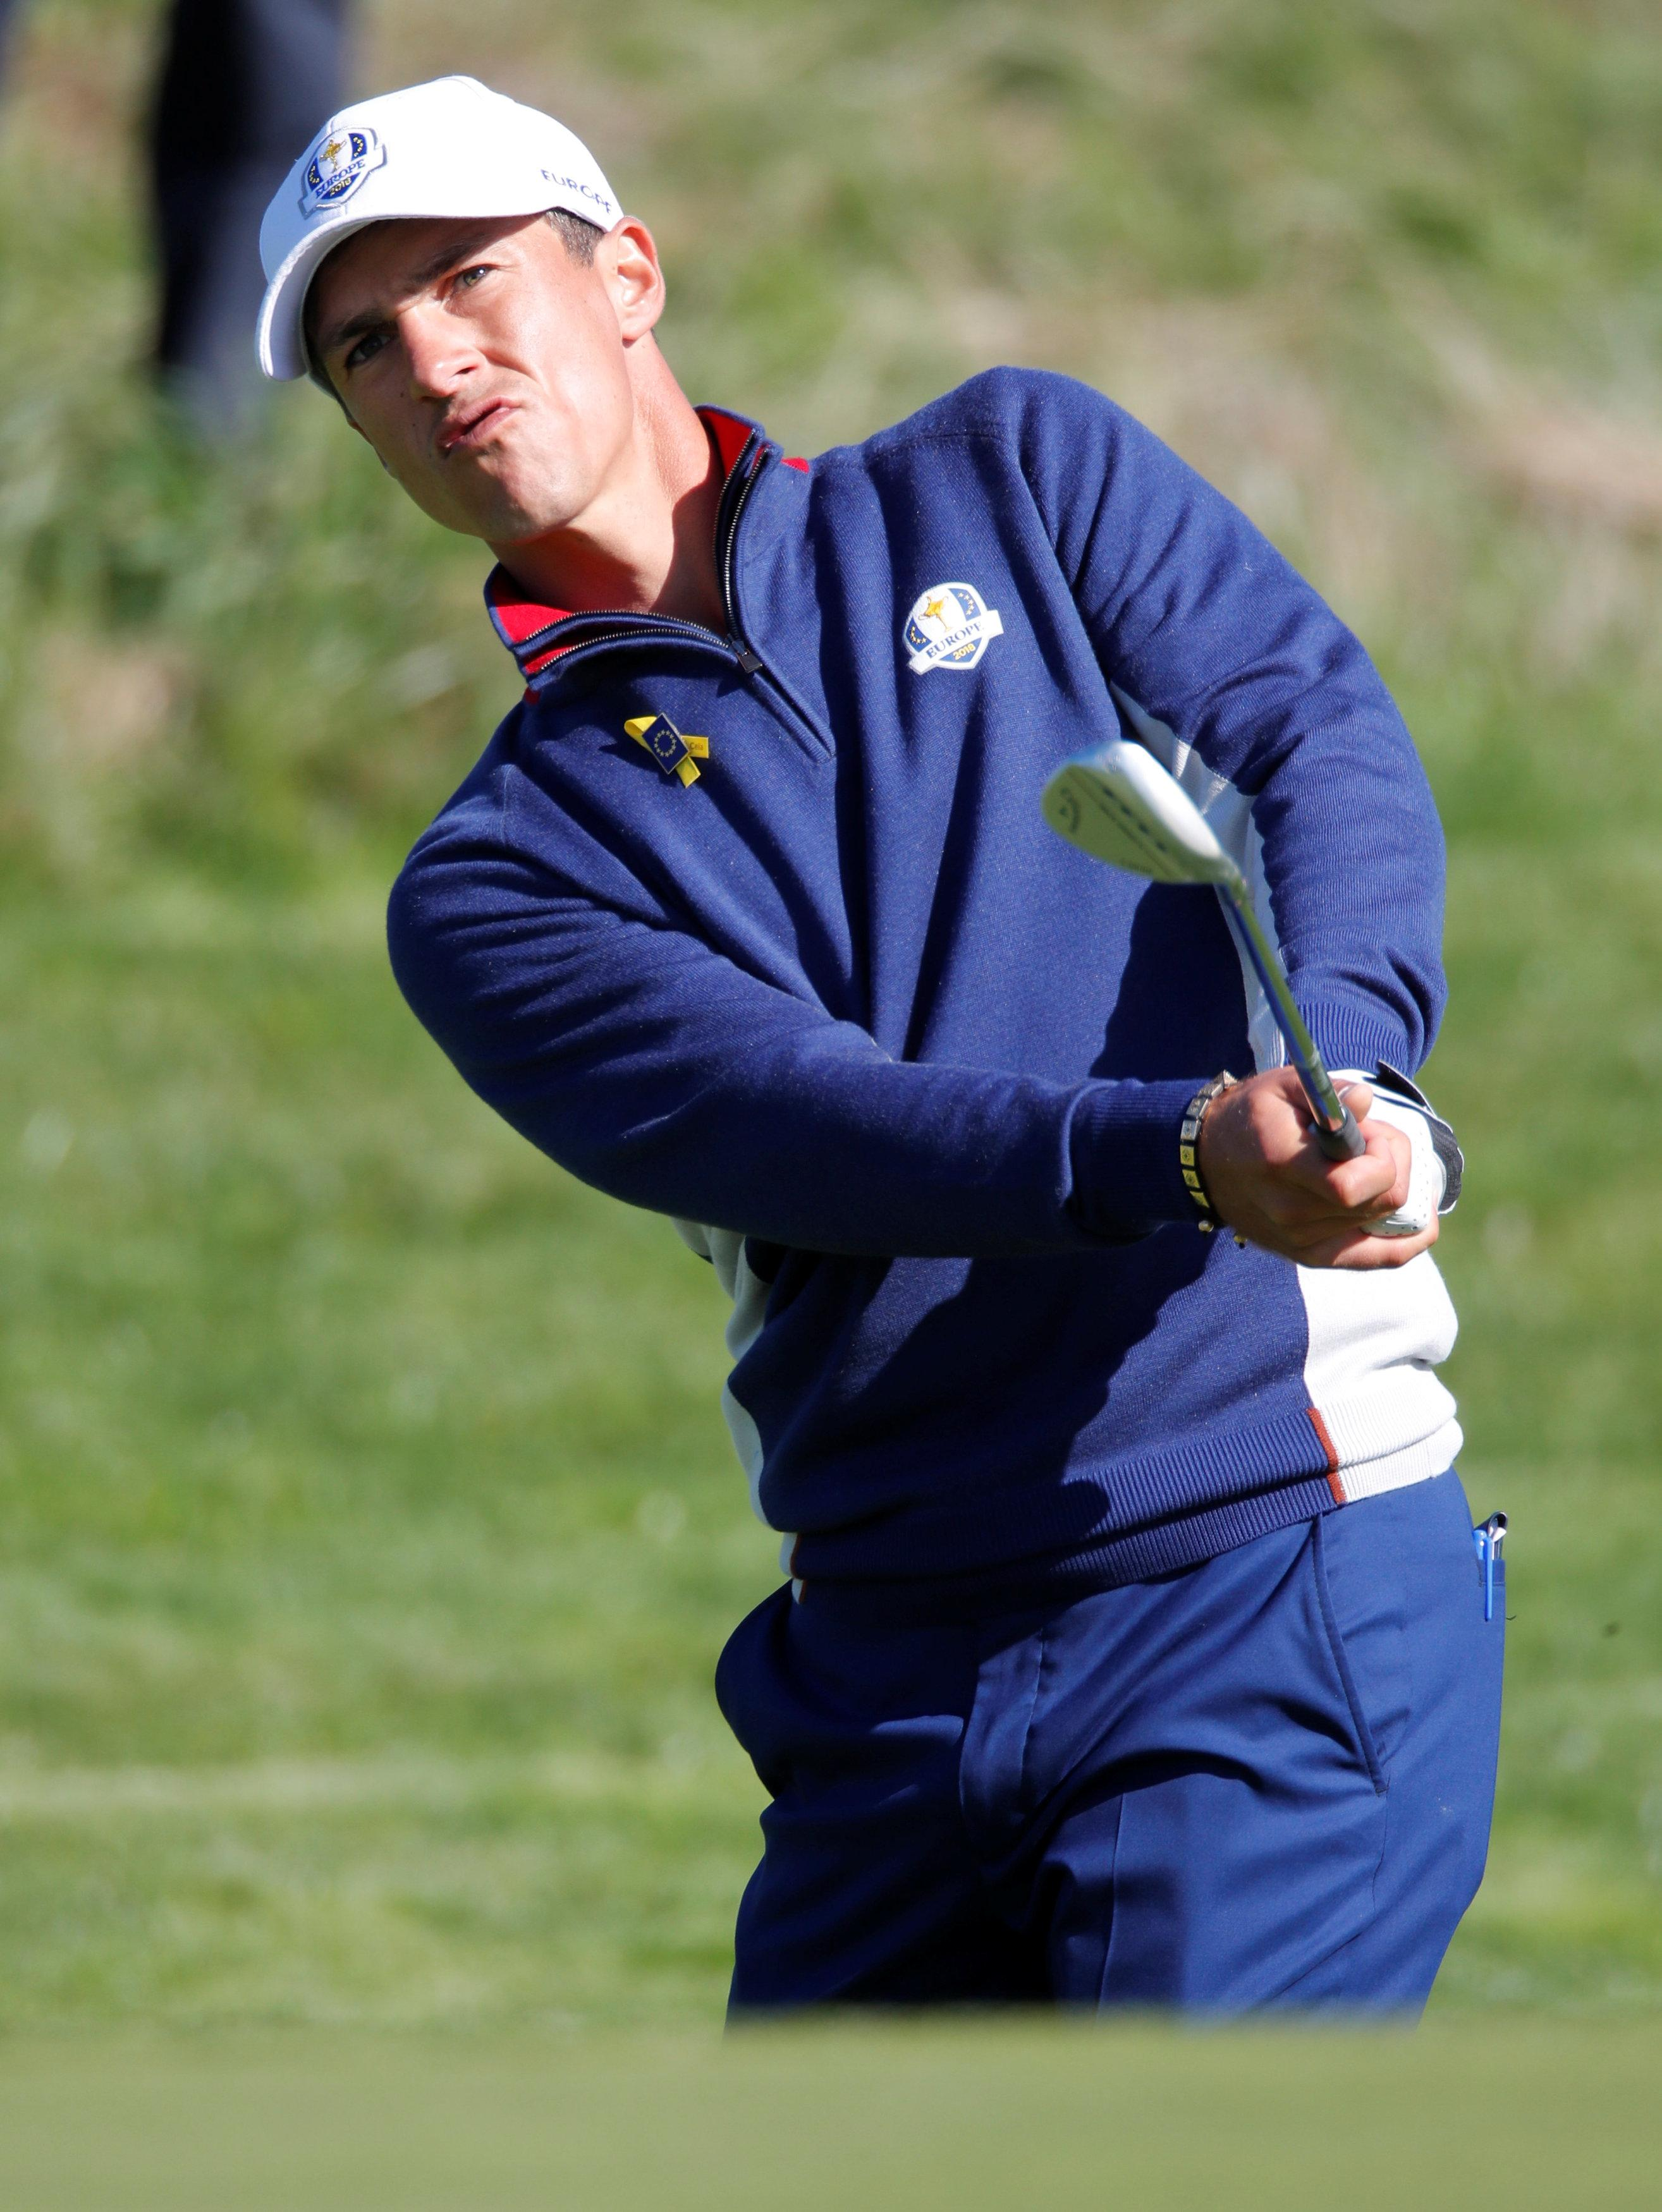 Thorbjorn Olesen snatched the final automatic qualification place for Team Europe from Matt Fitzpatrick